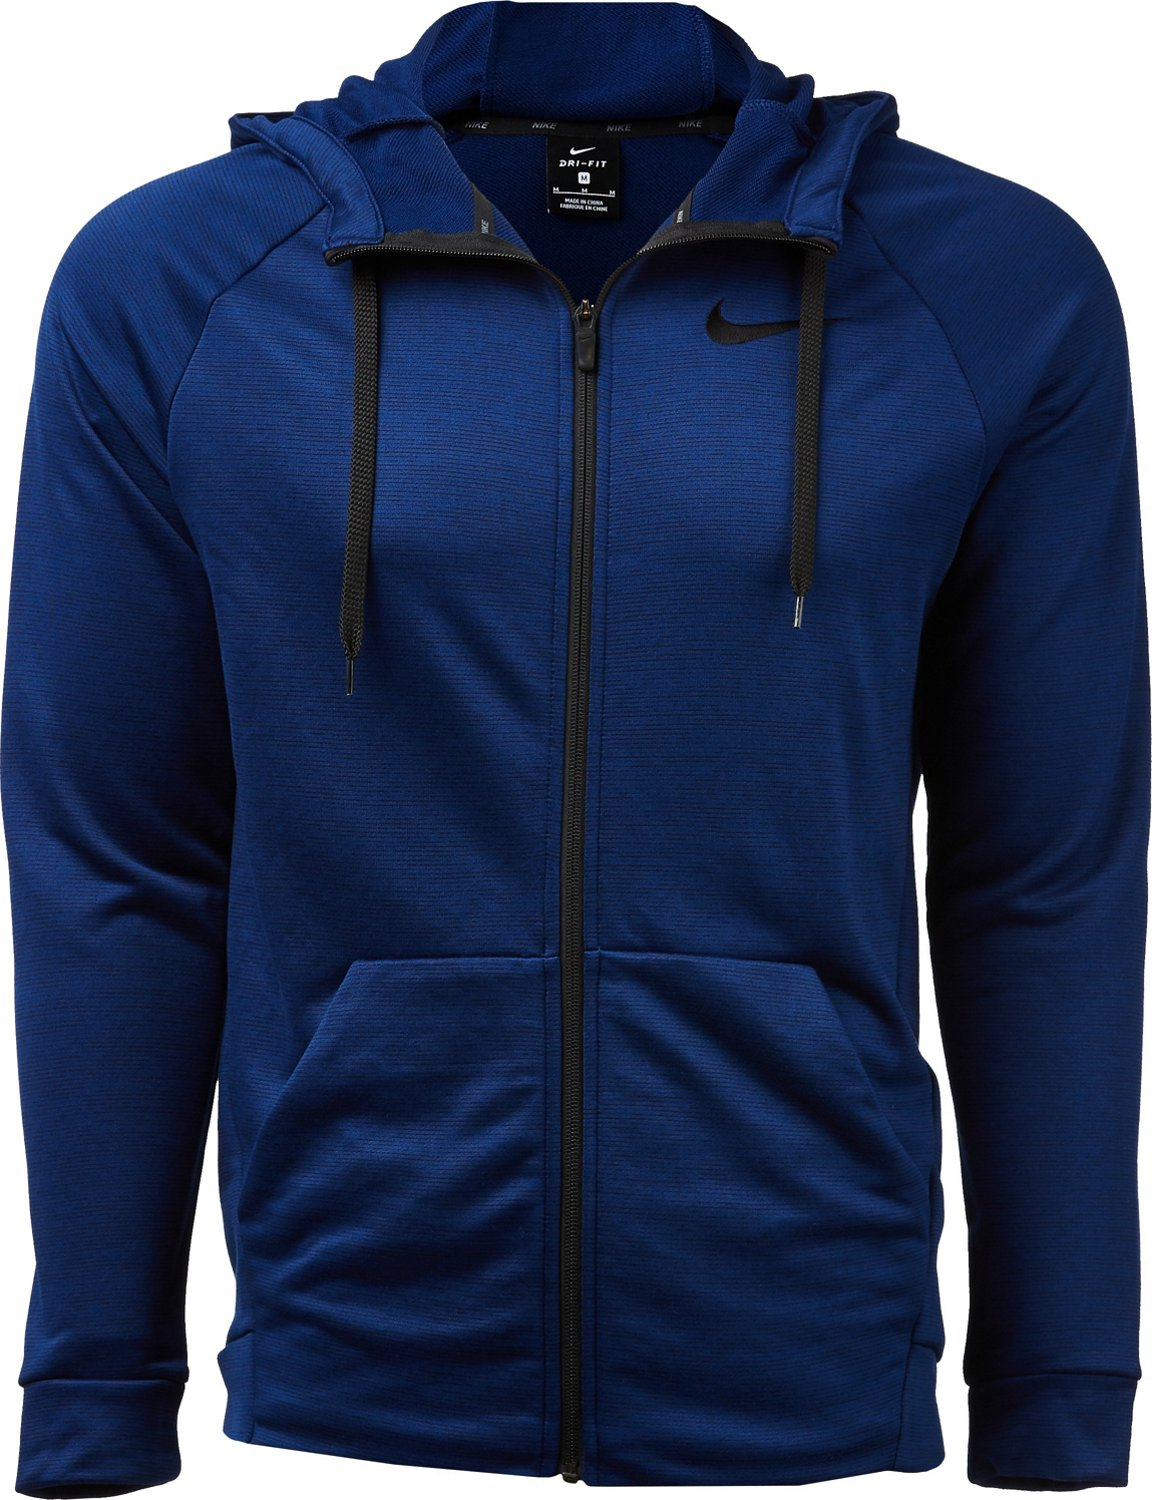 1316755e45dc Display product reviews for Nike Men s Dry Training Hoodie